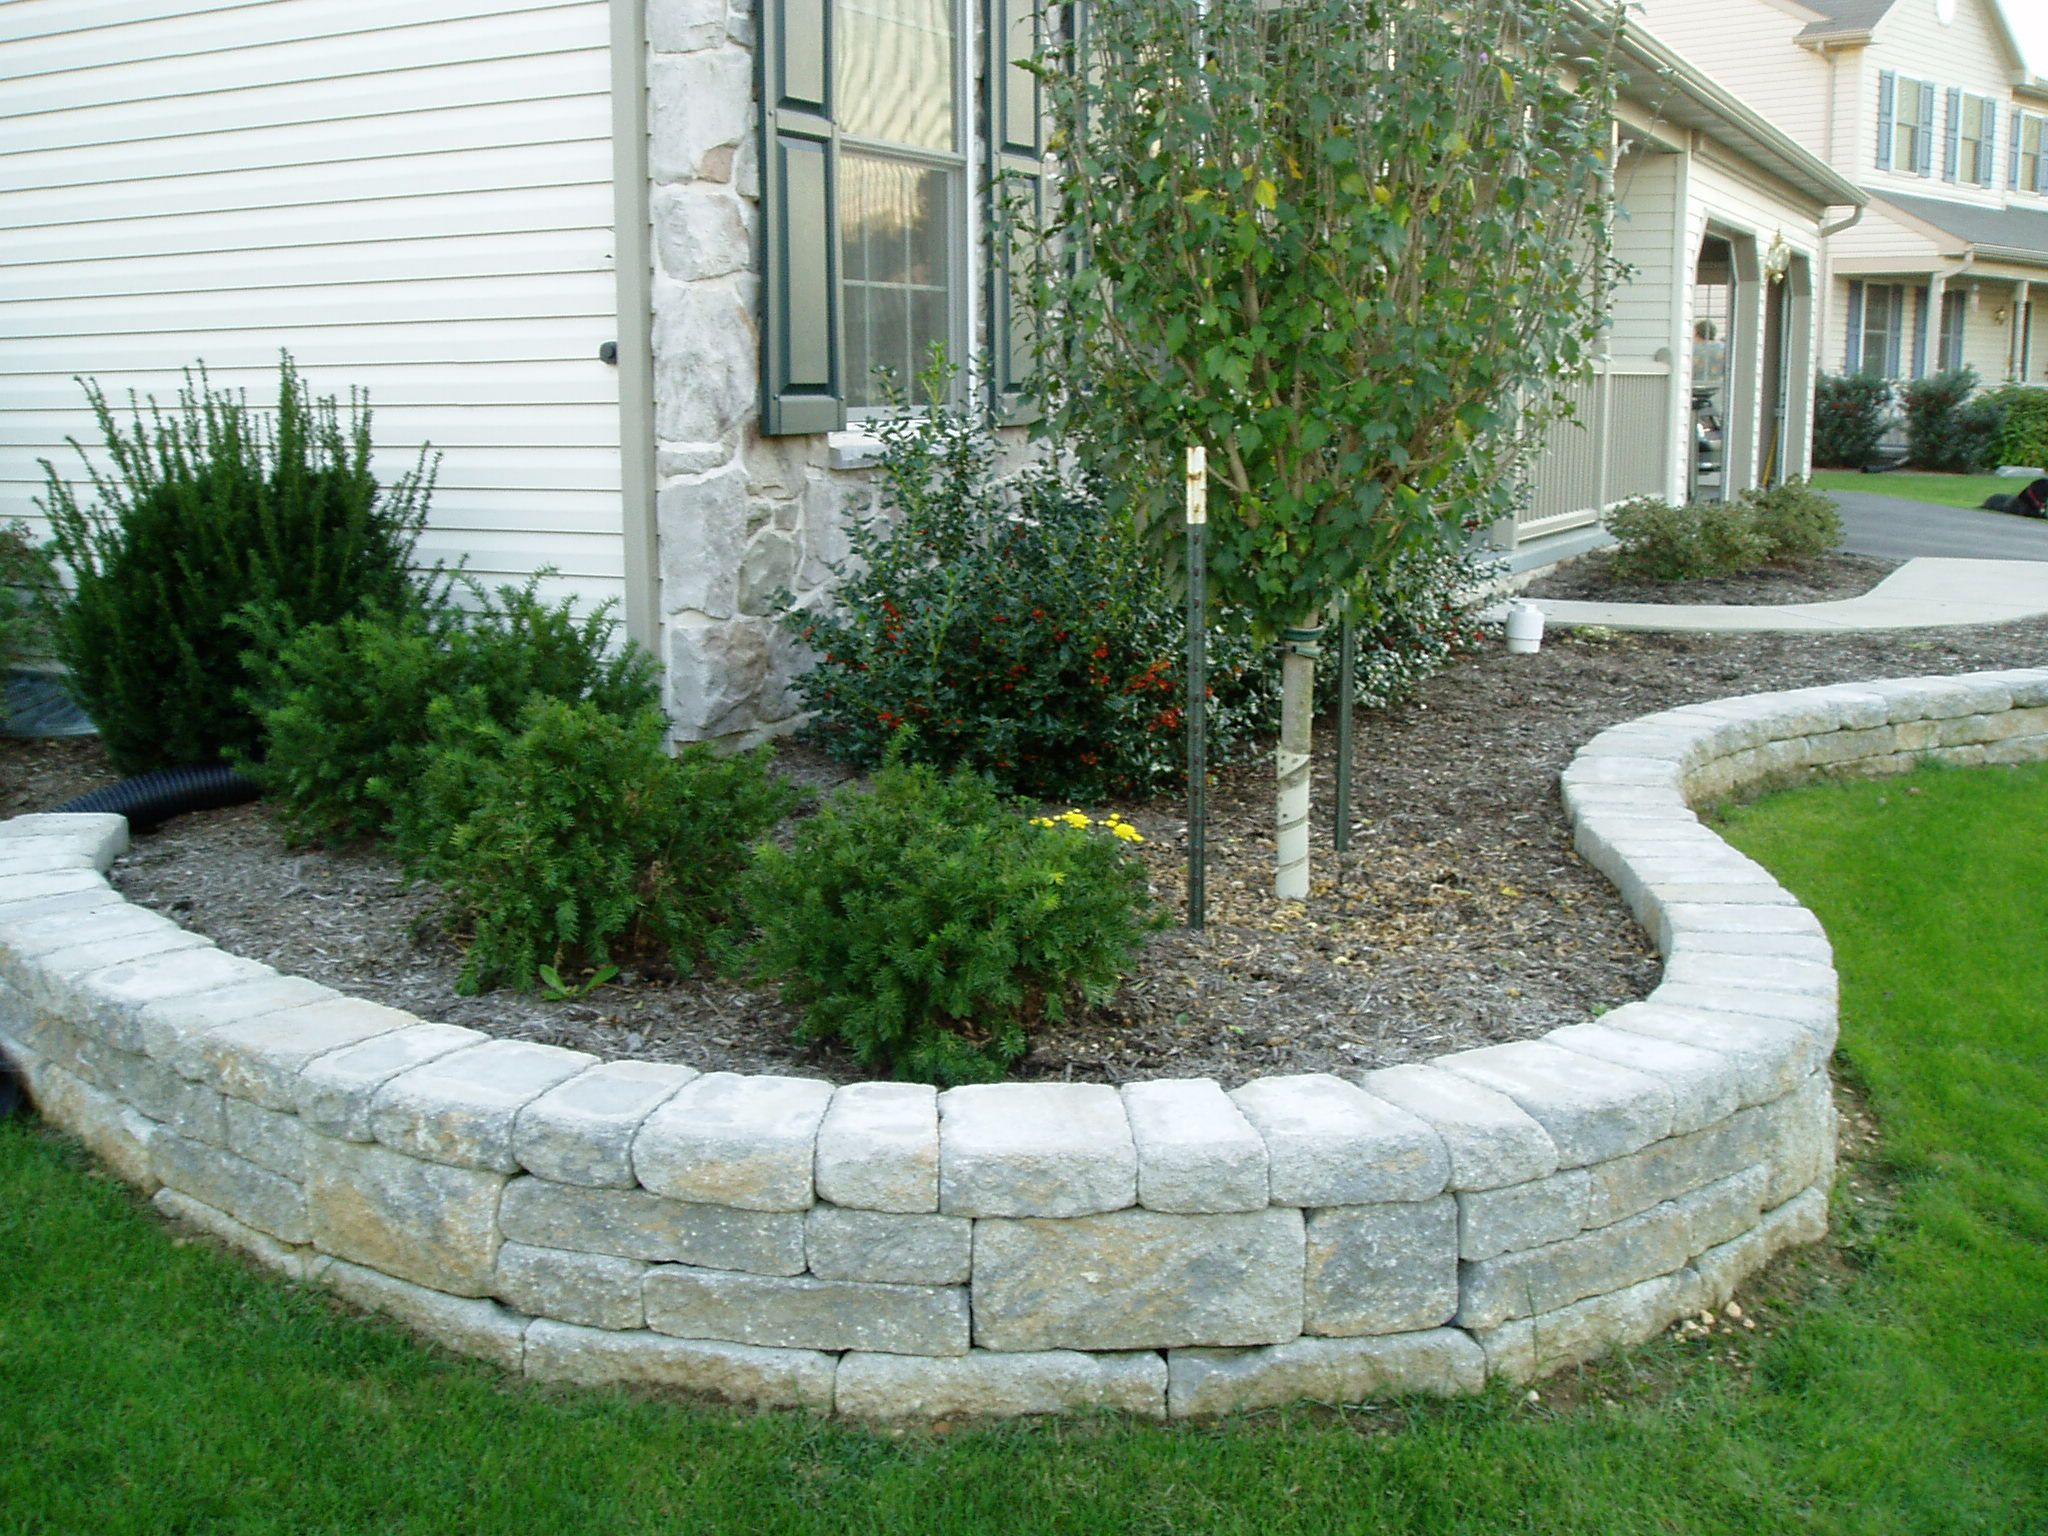 Landscaping outdoor space pinterest landscaping for Stone wall landscaping ideas